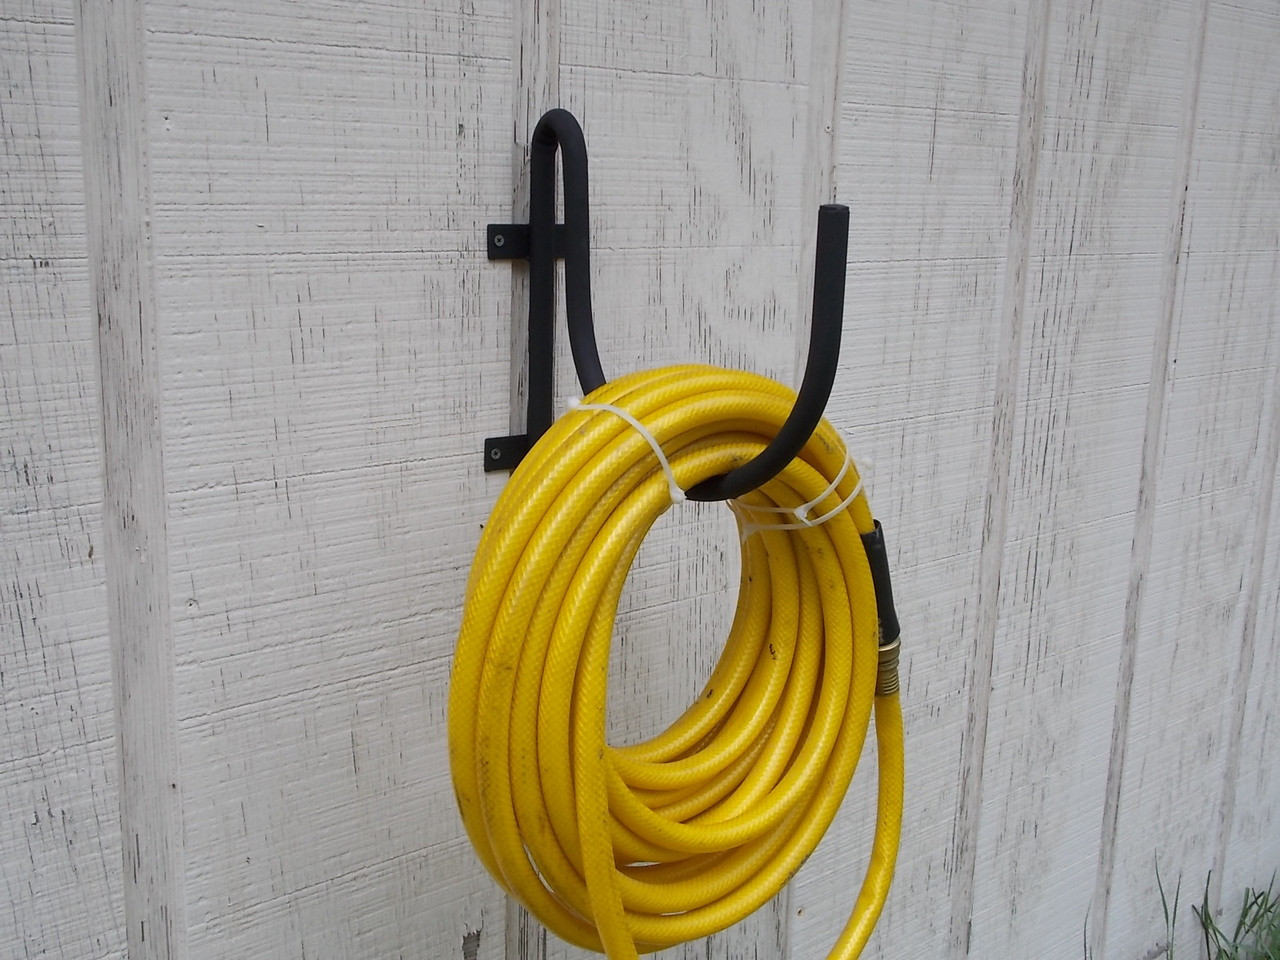 Merveilleux Wall Mount Garden Hose Holder Black Wrought Iron By The Lazy Scroll.  Loading Zoom